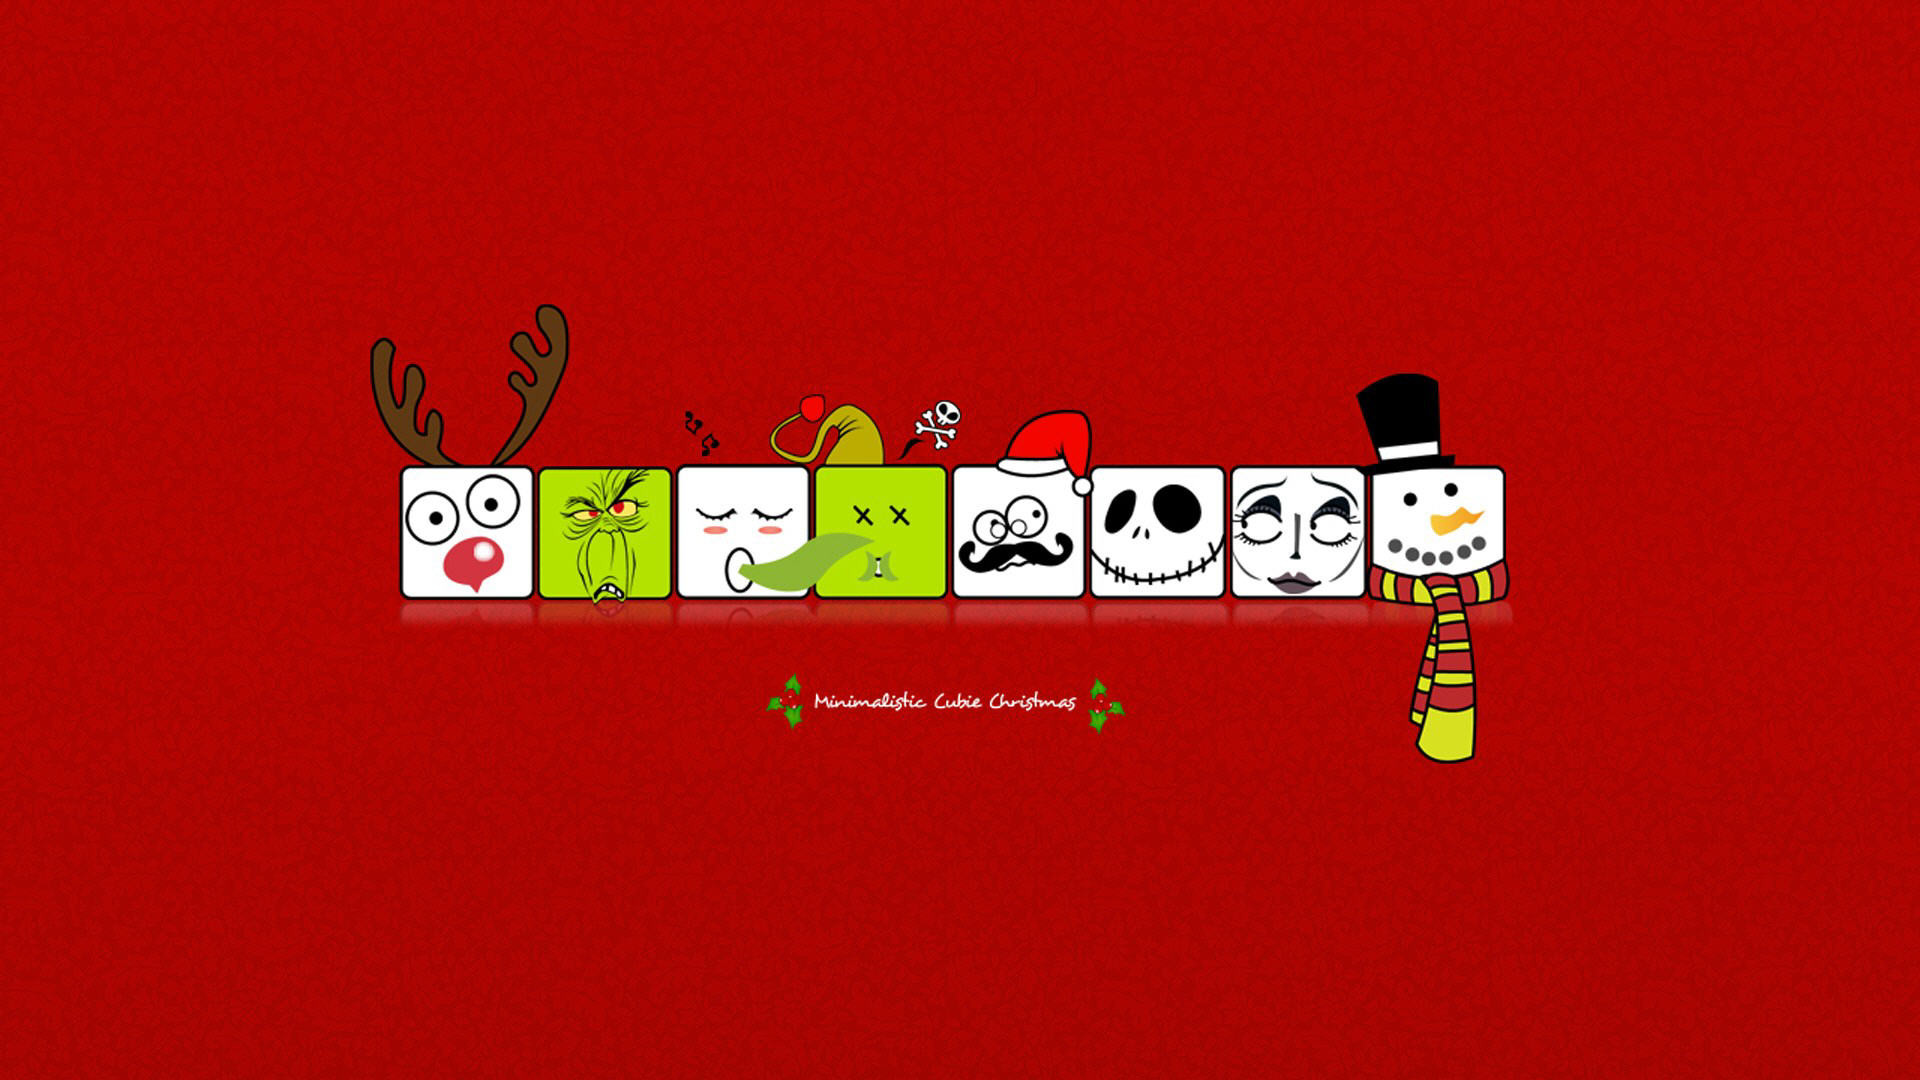 Res: 1920x1080, Funny Hd Christmas Wallpapers - image #761956